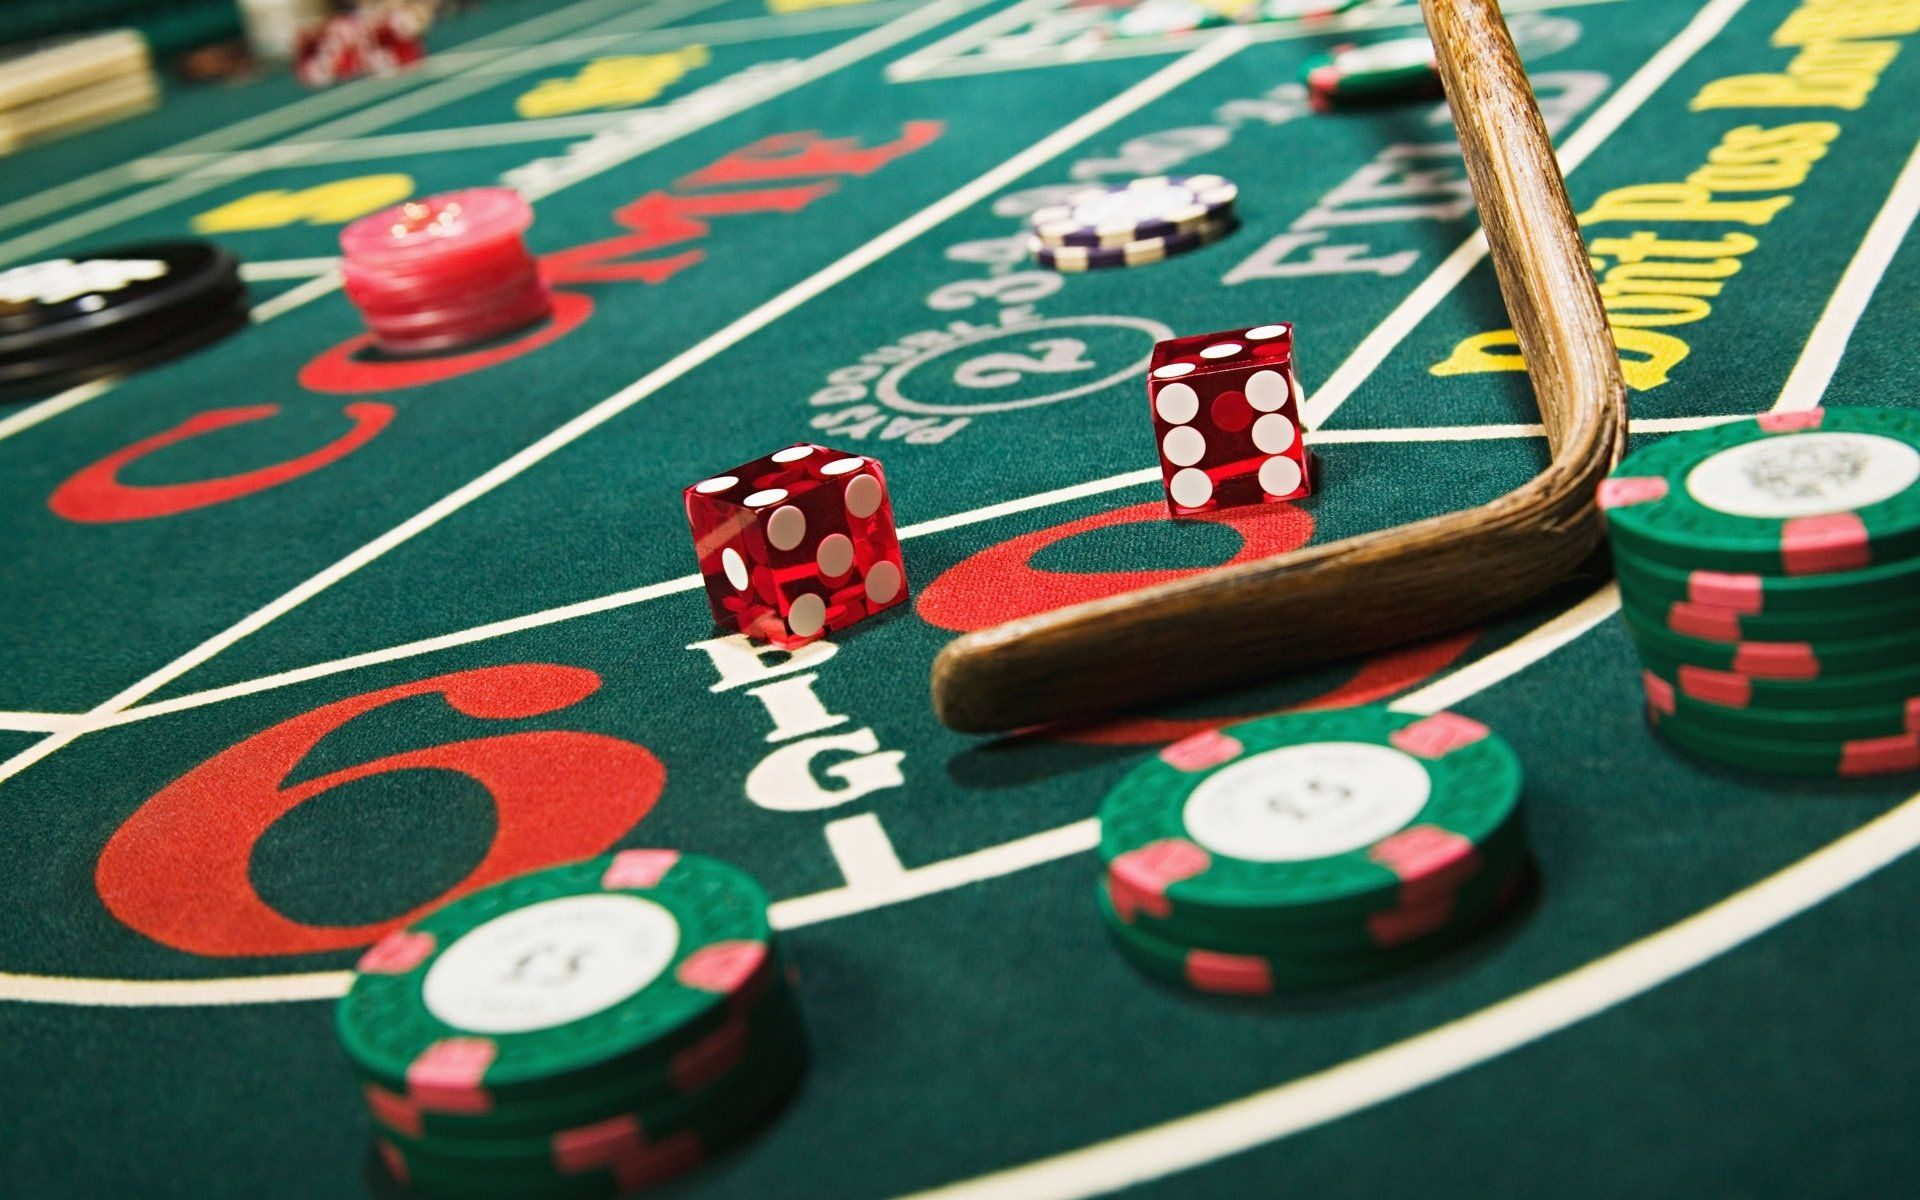 Why online gambling platforms offer promotions